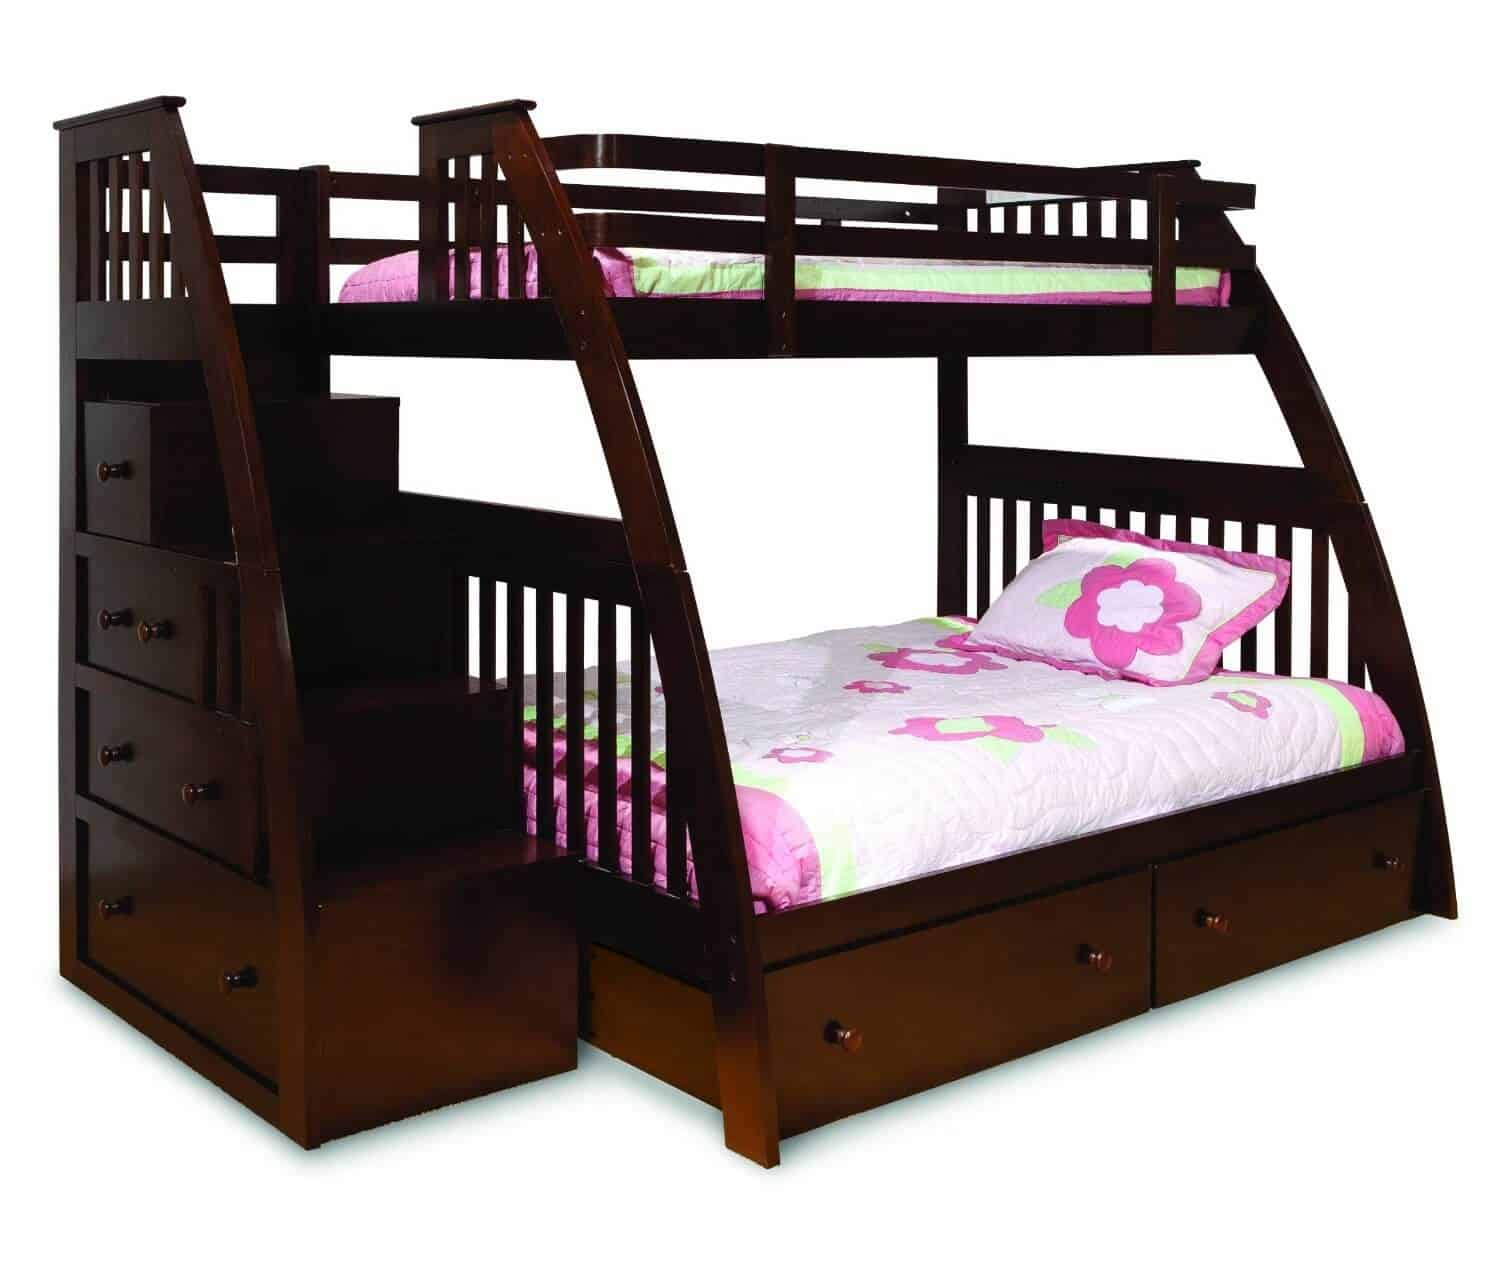 This espresso-toned modern style bunk bed features curved supports and perpendicular drawers, facing outward, built into the stairs. A twin bed sits on top, with a full size mattress below.